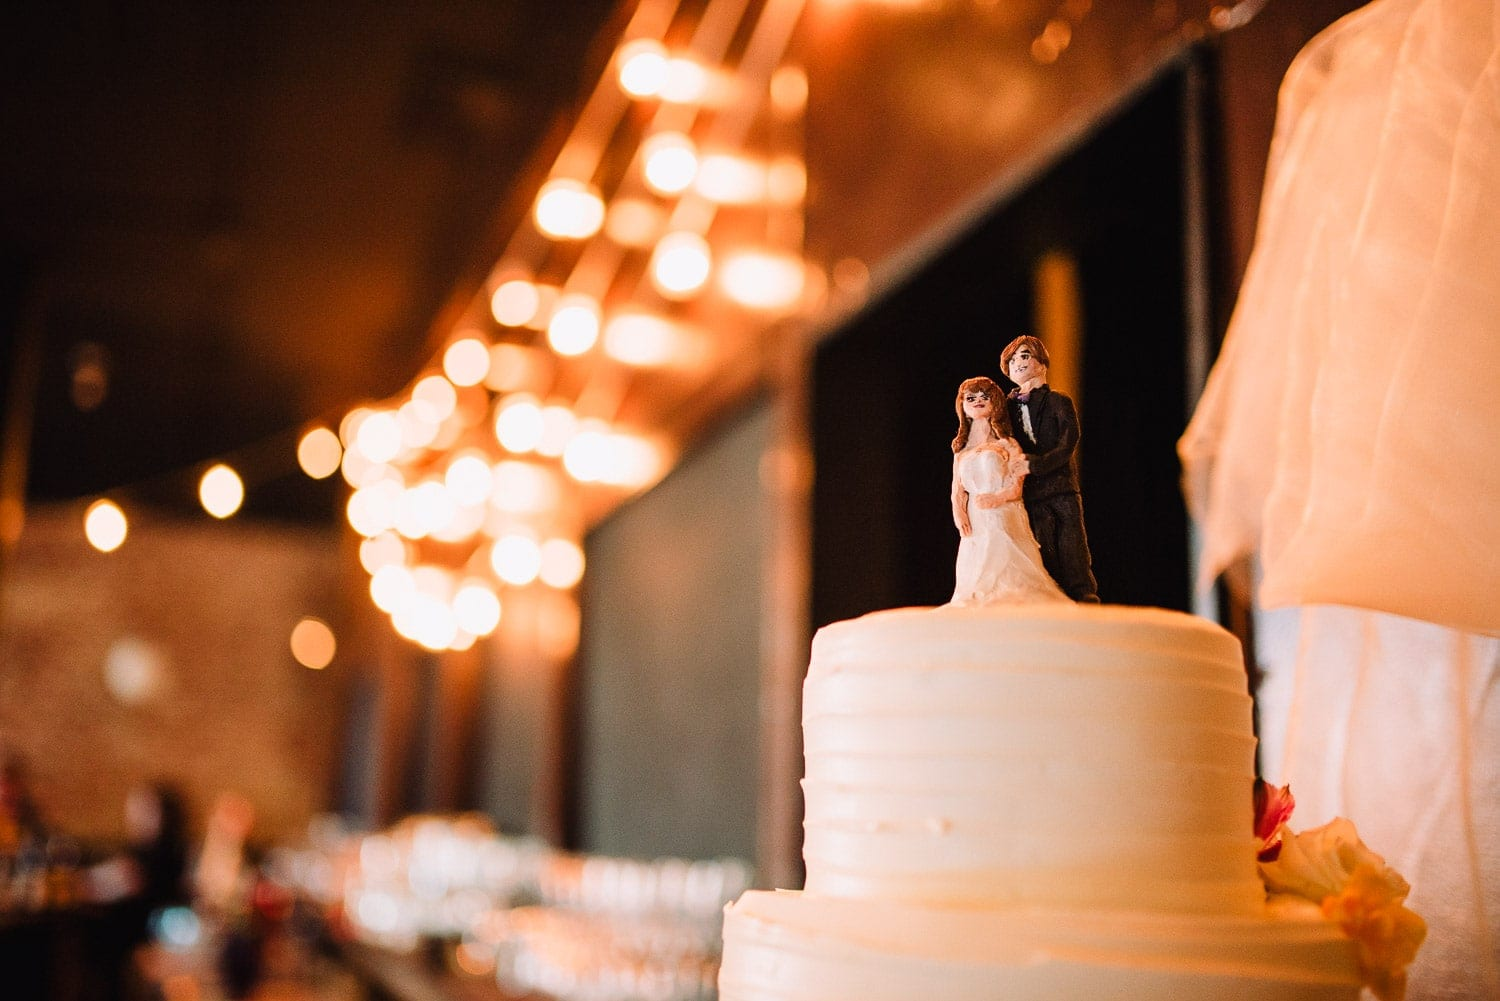 Close view of the wedding cake toppers.